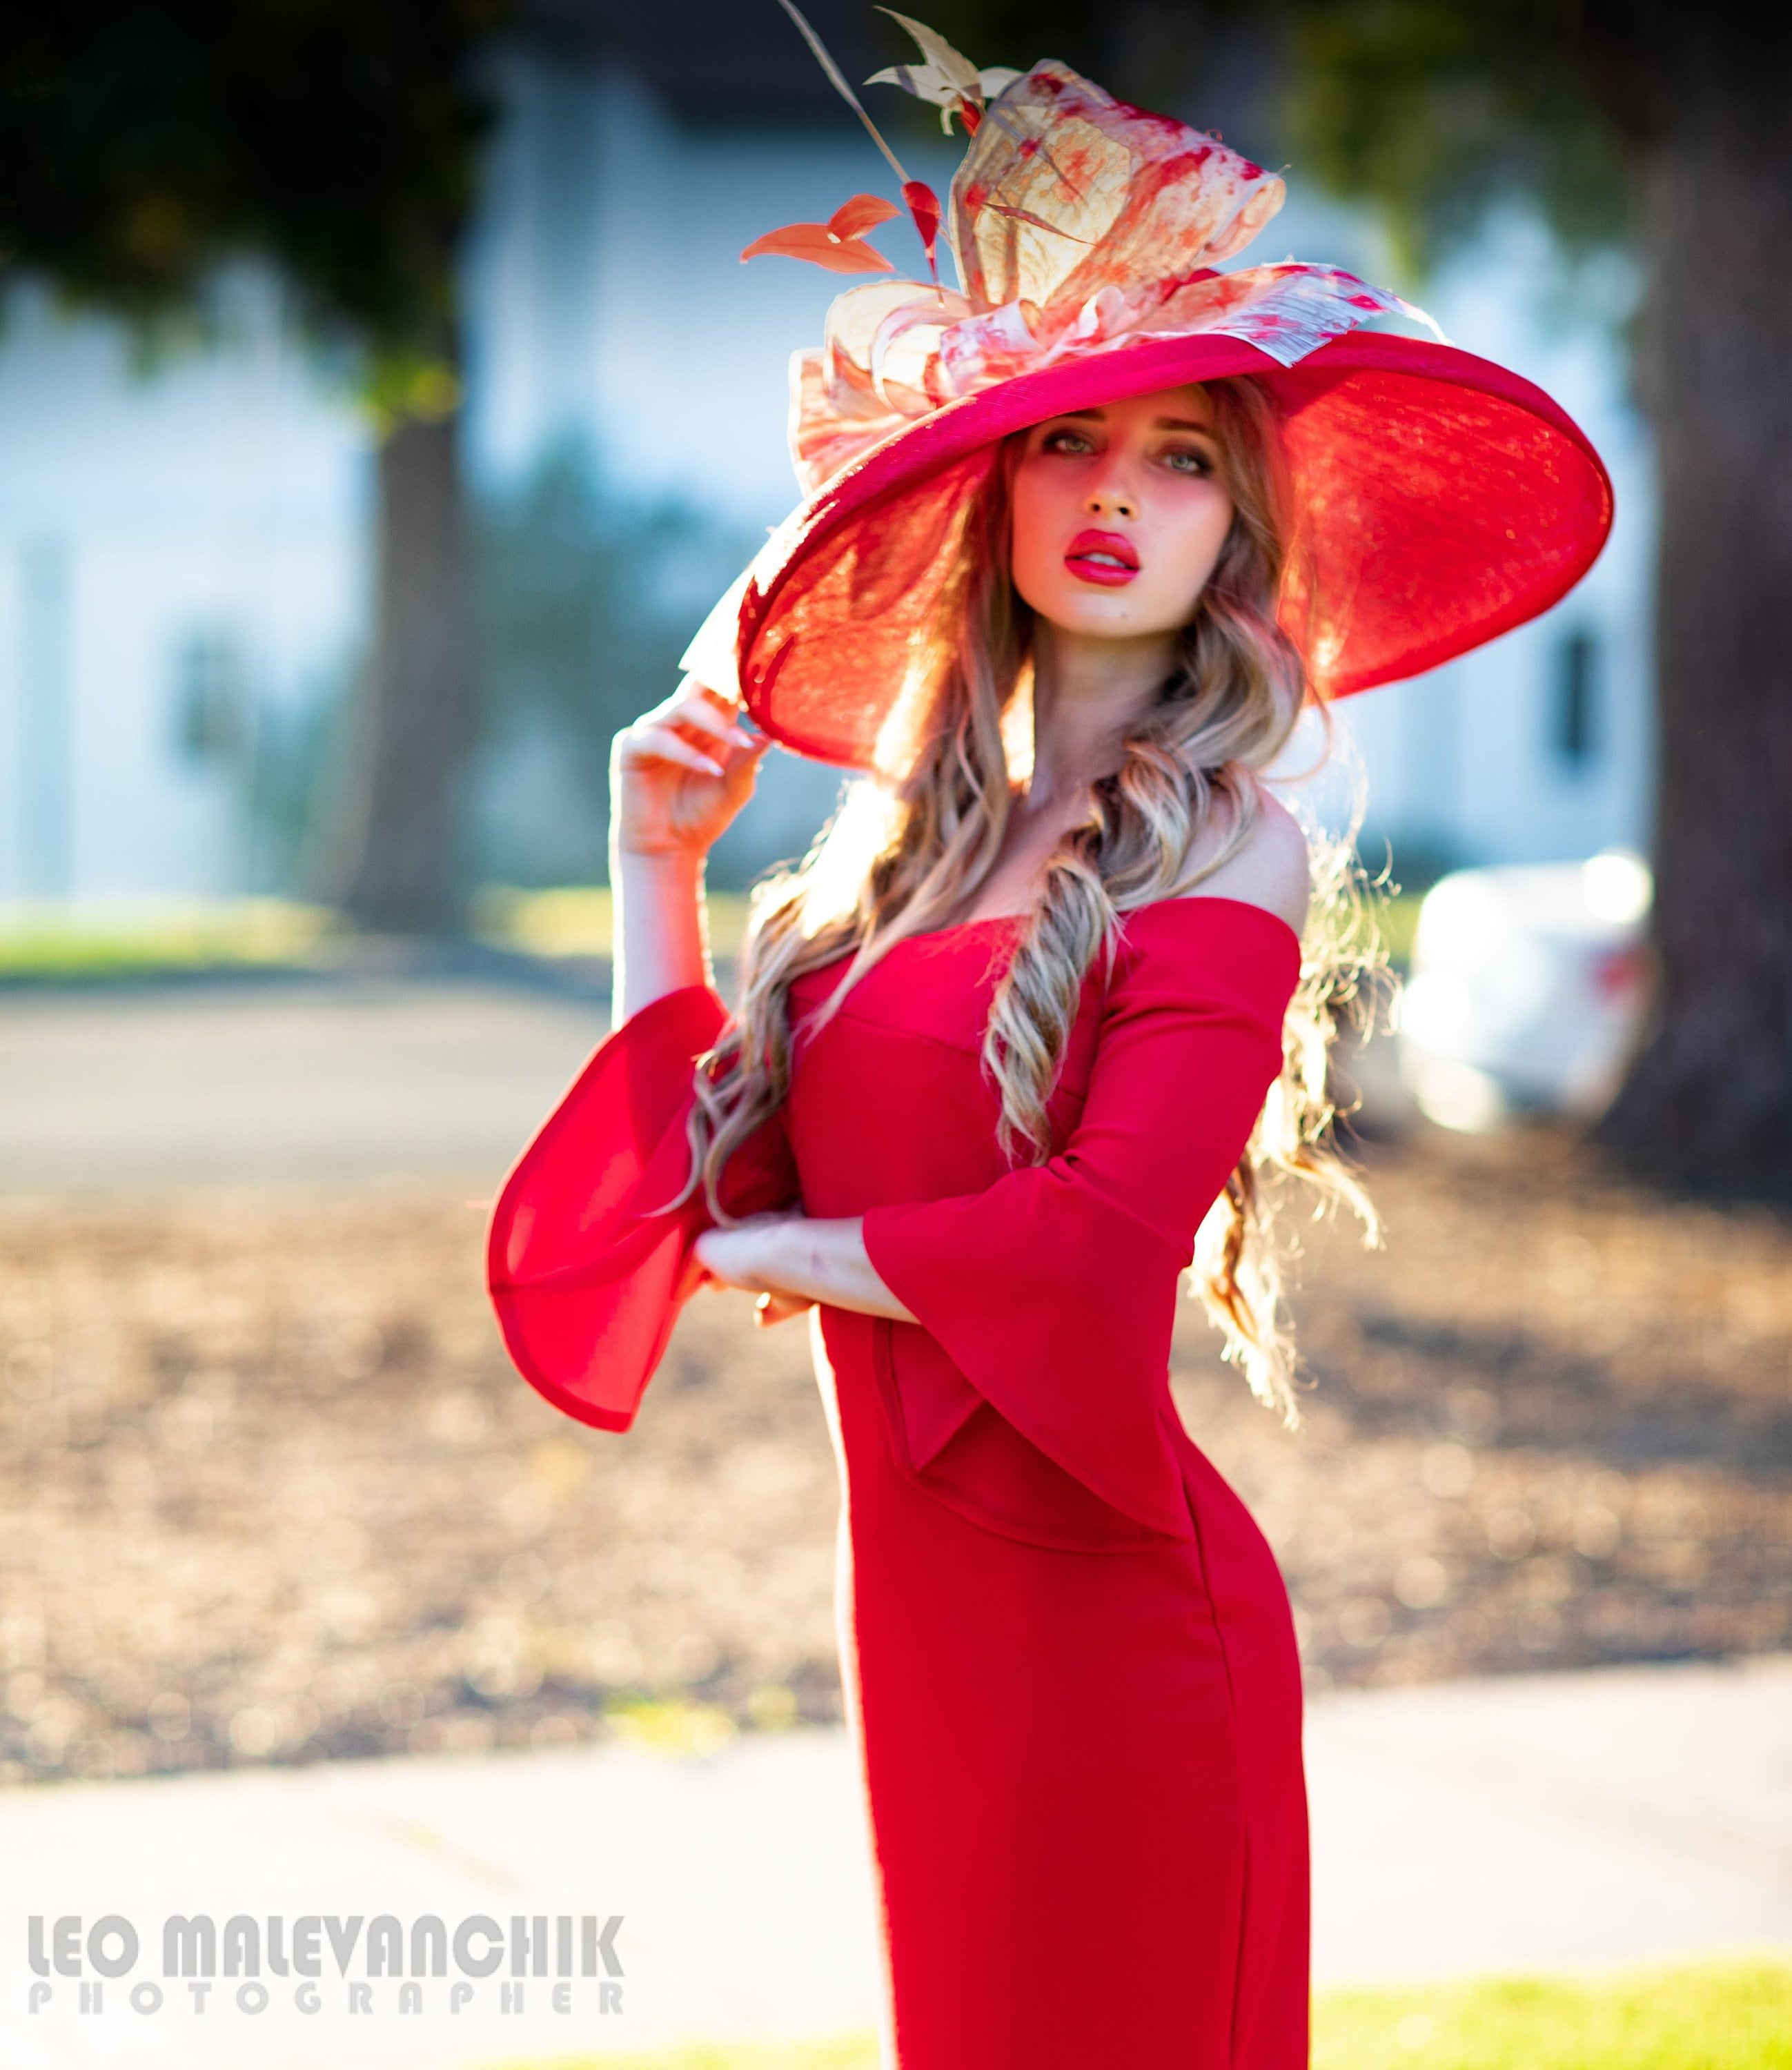 faee2d12851 2019 spring collection. Kentucky Derby hat. Red hat. Large